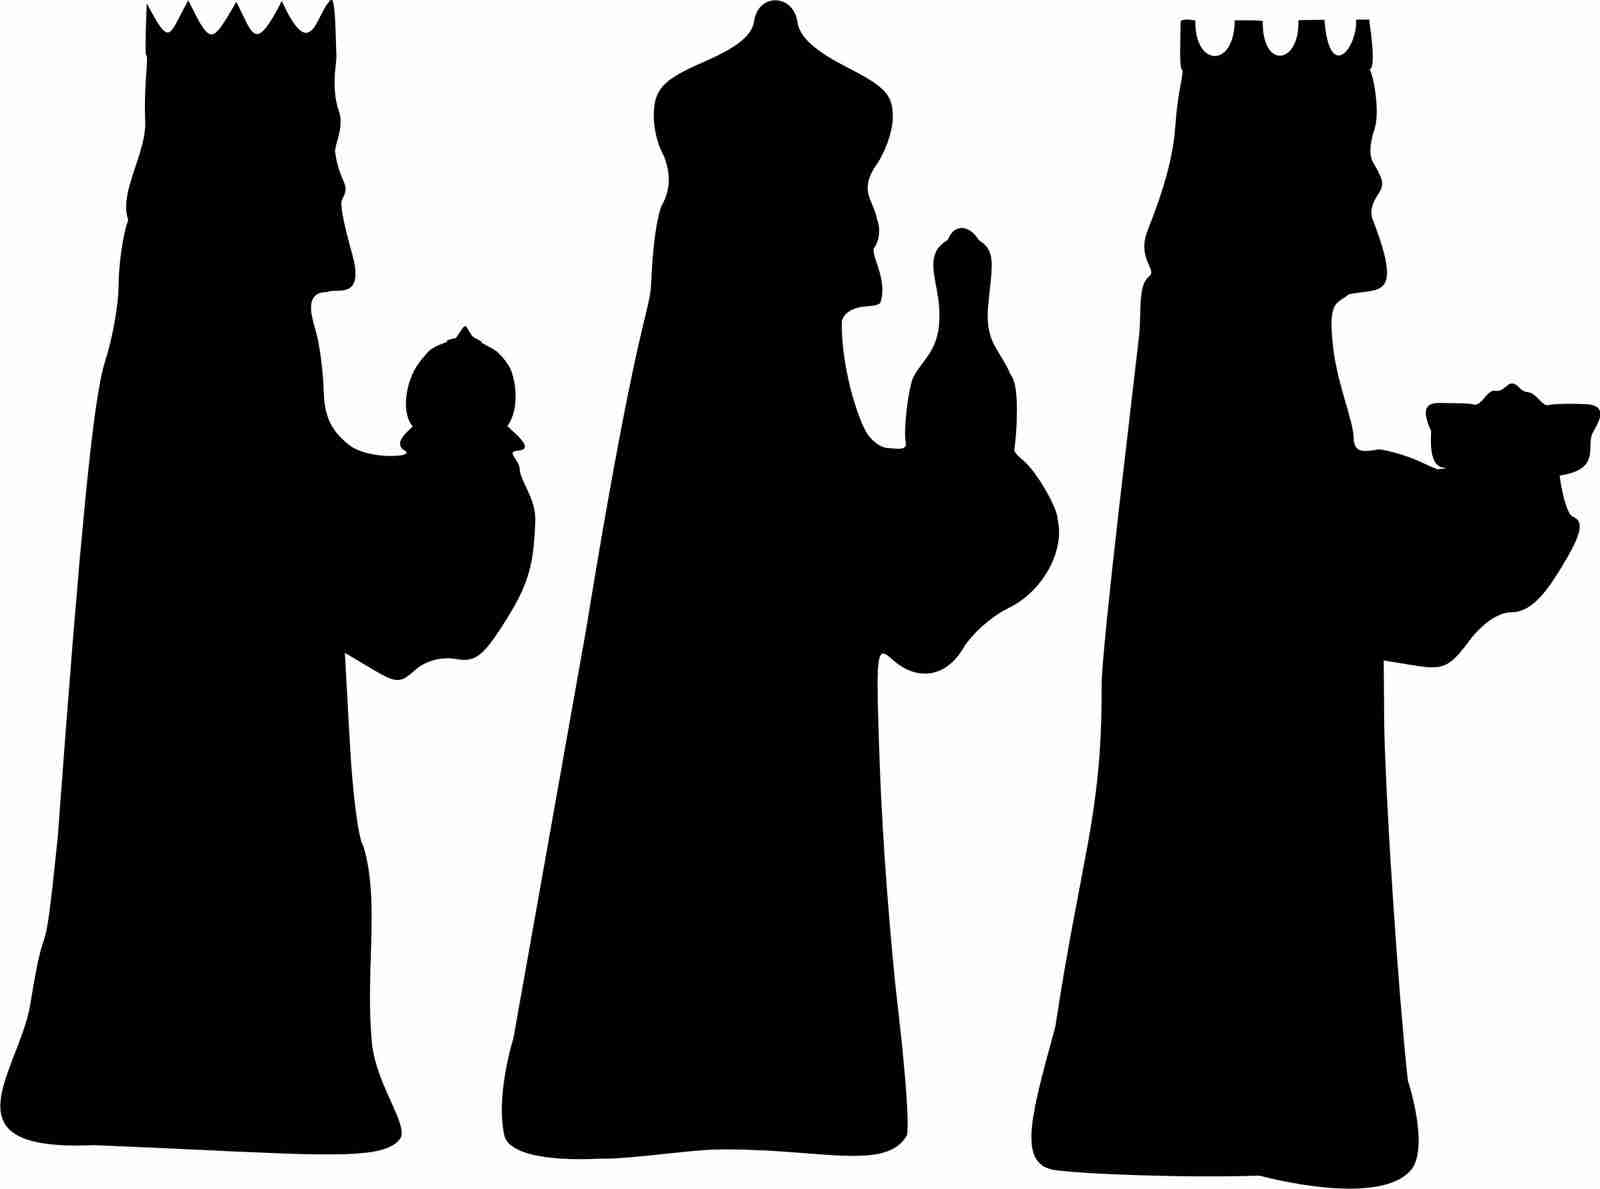 3 Kings Silhouette